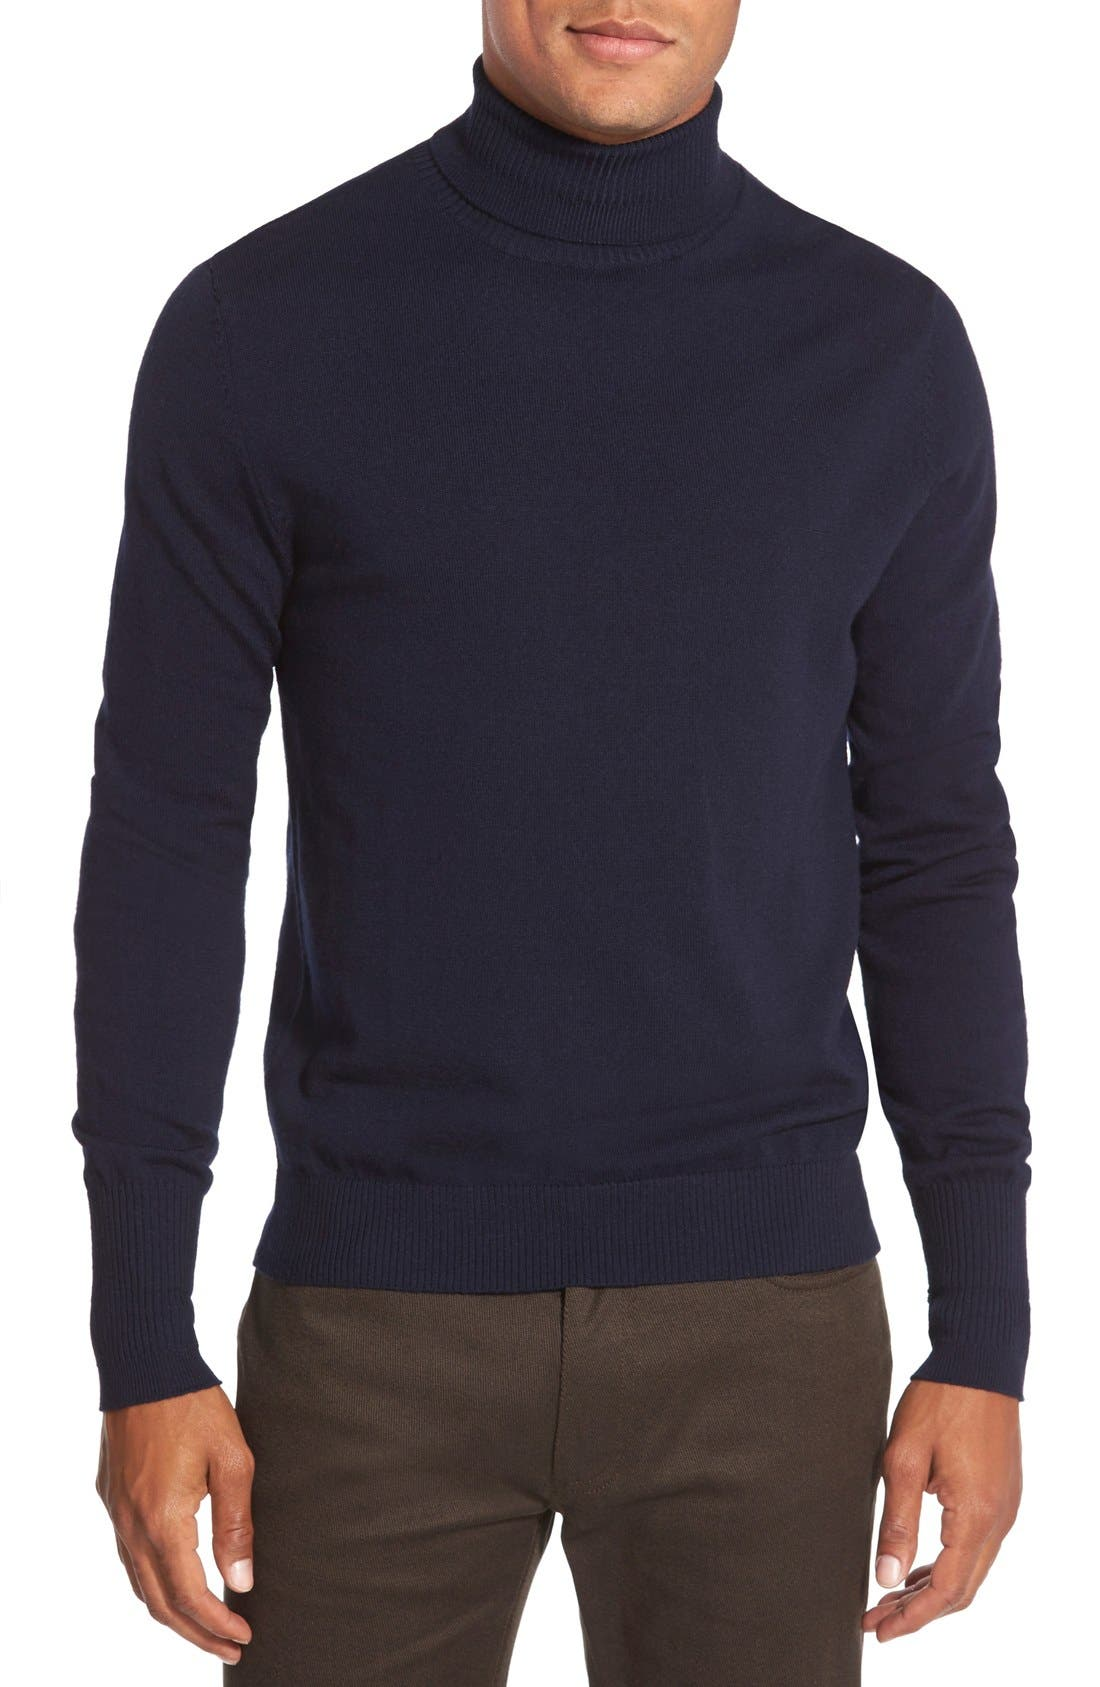 Alternate Image 1 Selected - Vince Camuto Merino Wool Turtleneck